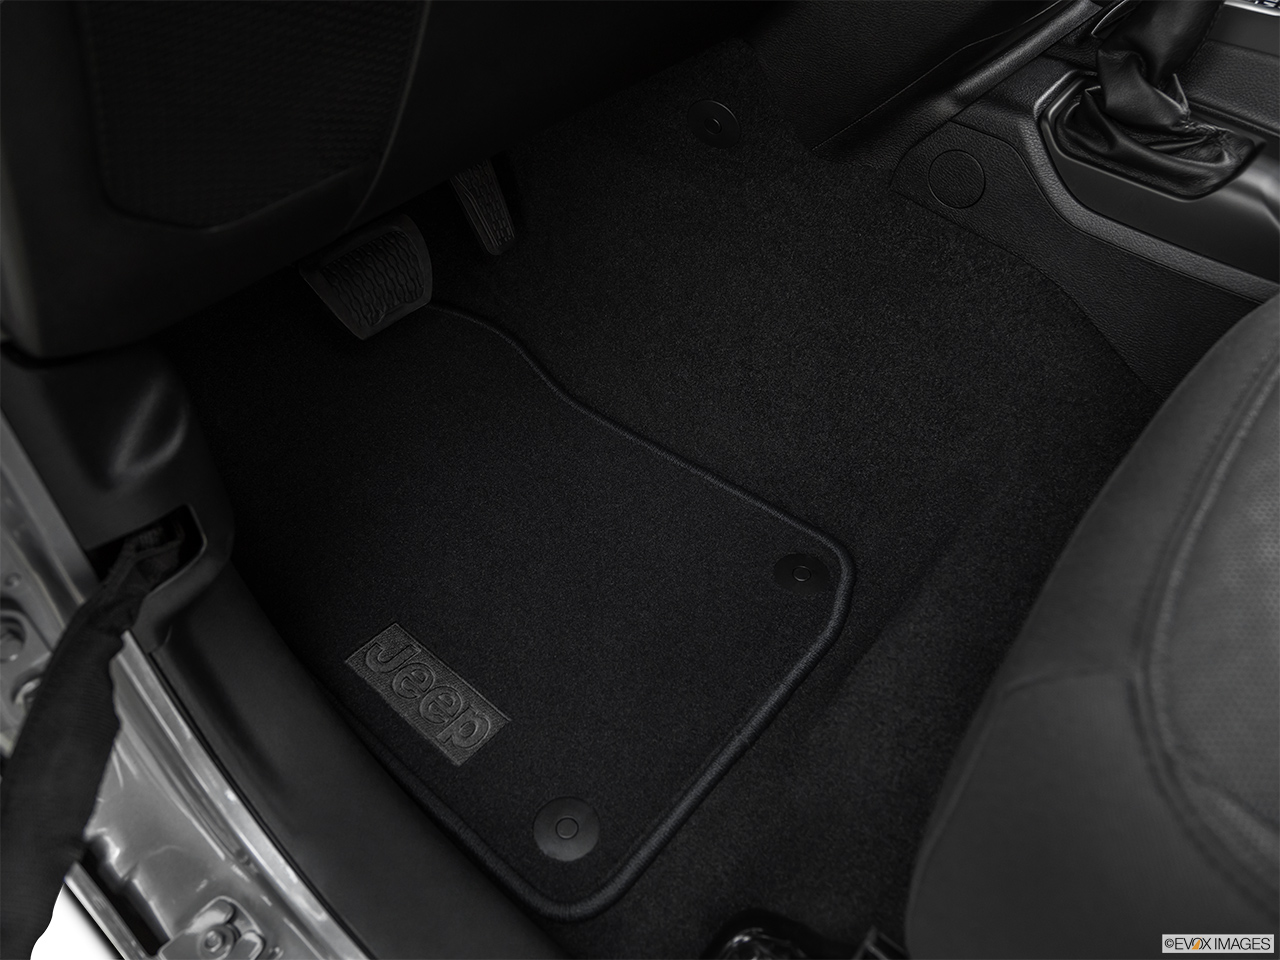 2020 Jeep Gladiator Sport S Driver's floor mat and pedals. Mid-seat level from outside looking in.